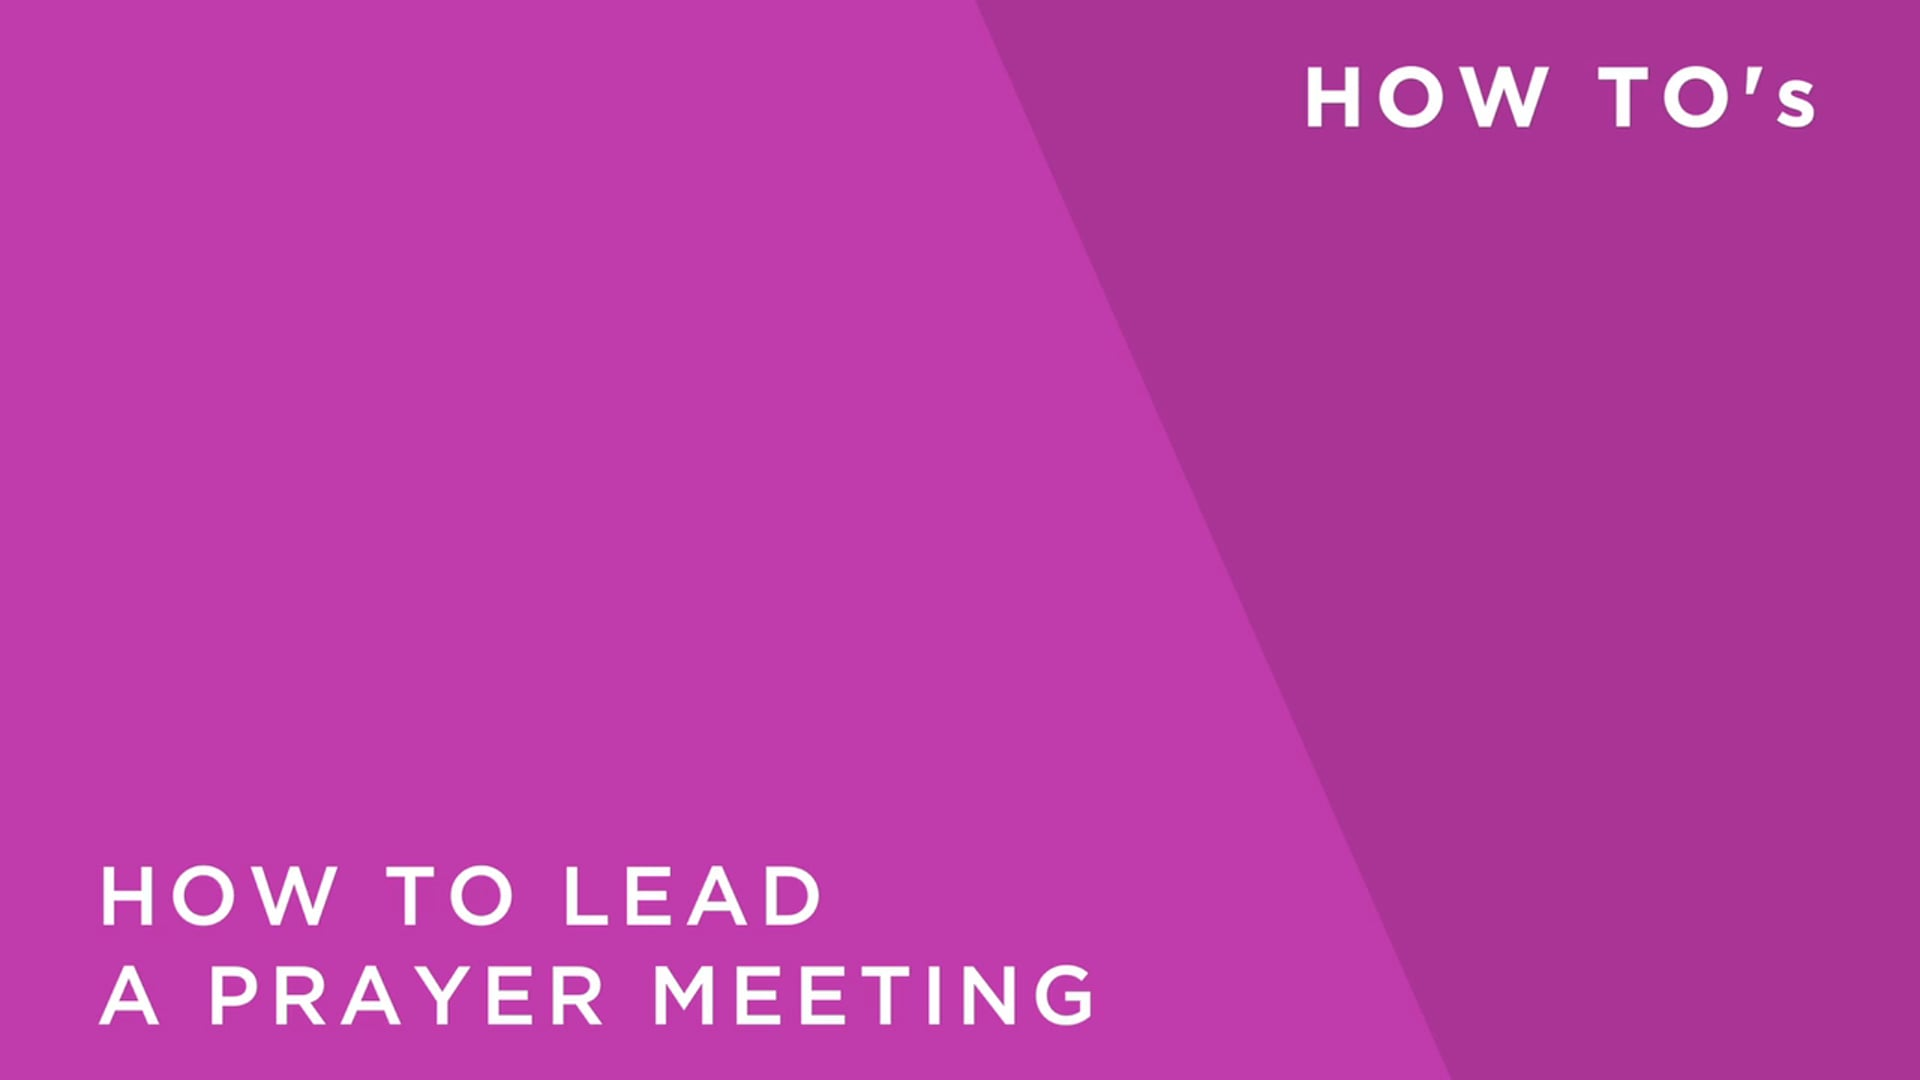 How to Lead a Prayer Meeting